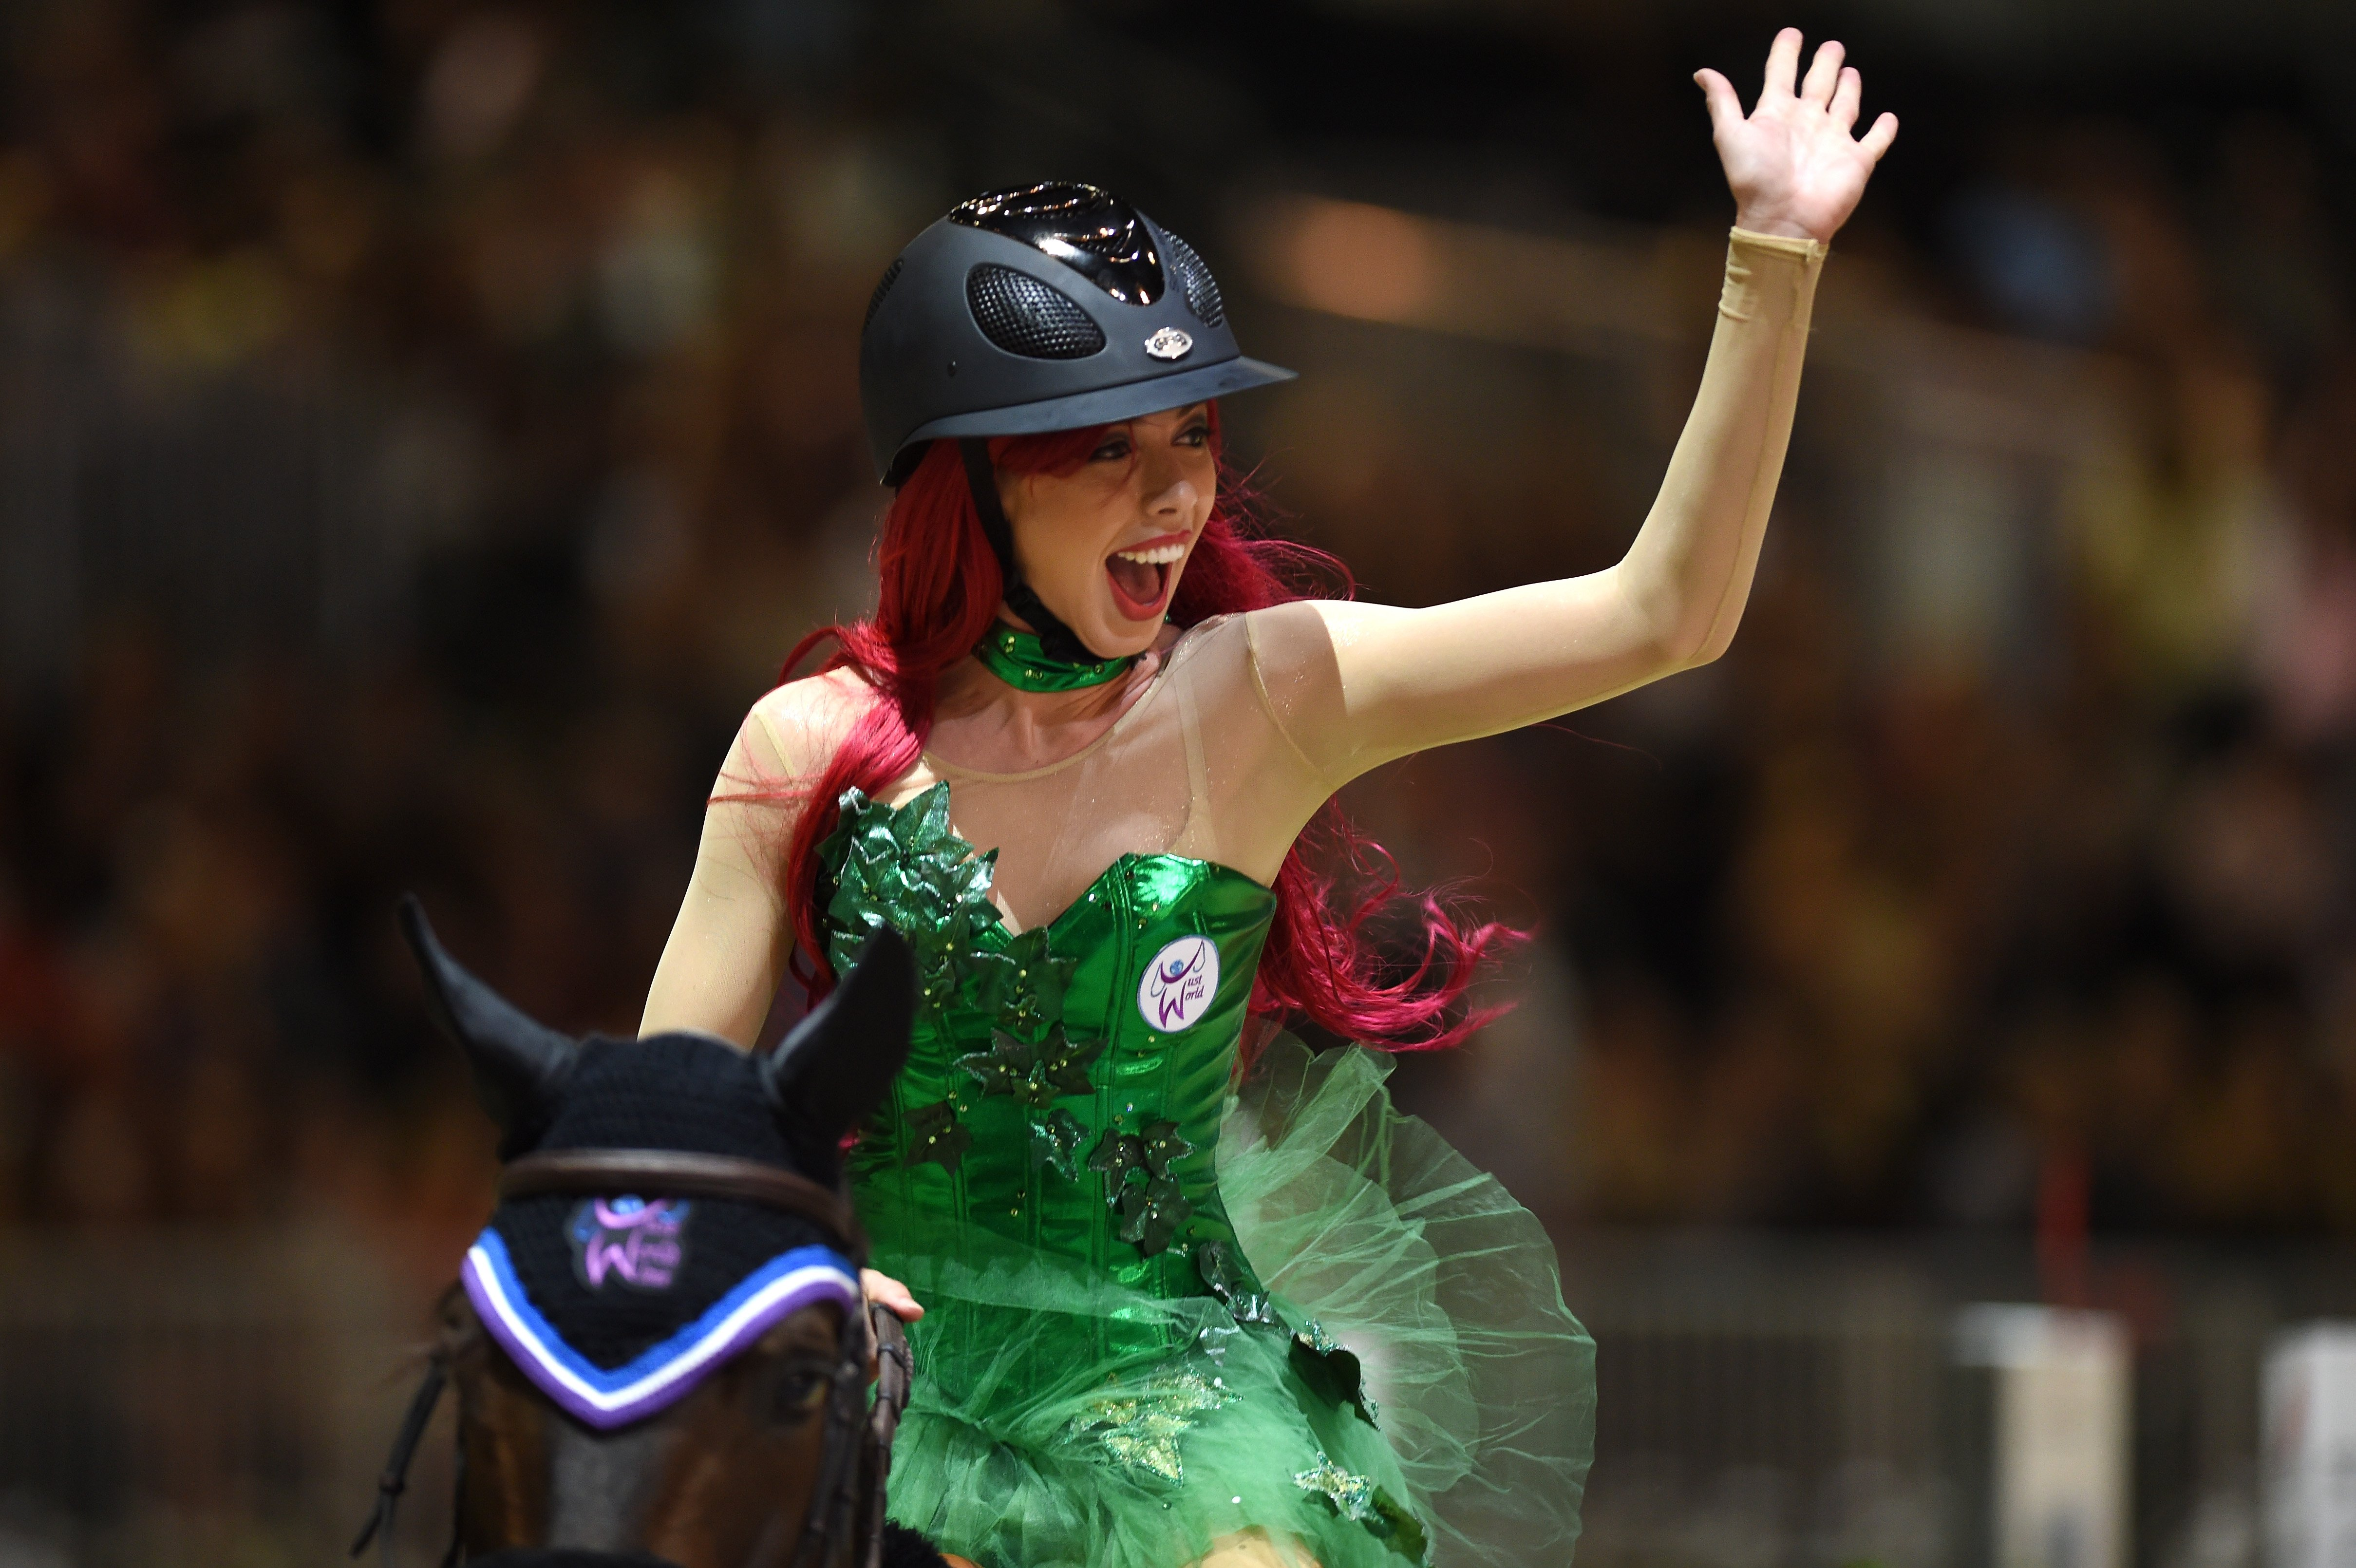 Hannah Selleck performs during the Charity Pro-AM class at Longines Los Angeles Masters at Los Angeles Convention Center on September 27, 2014  | Photo: GettyImages